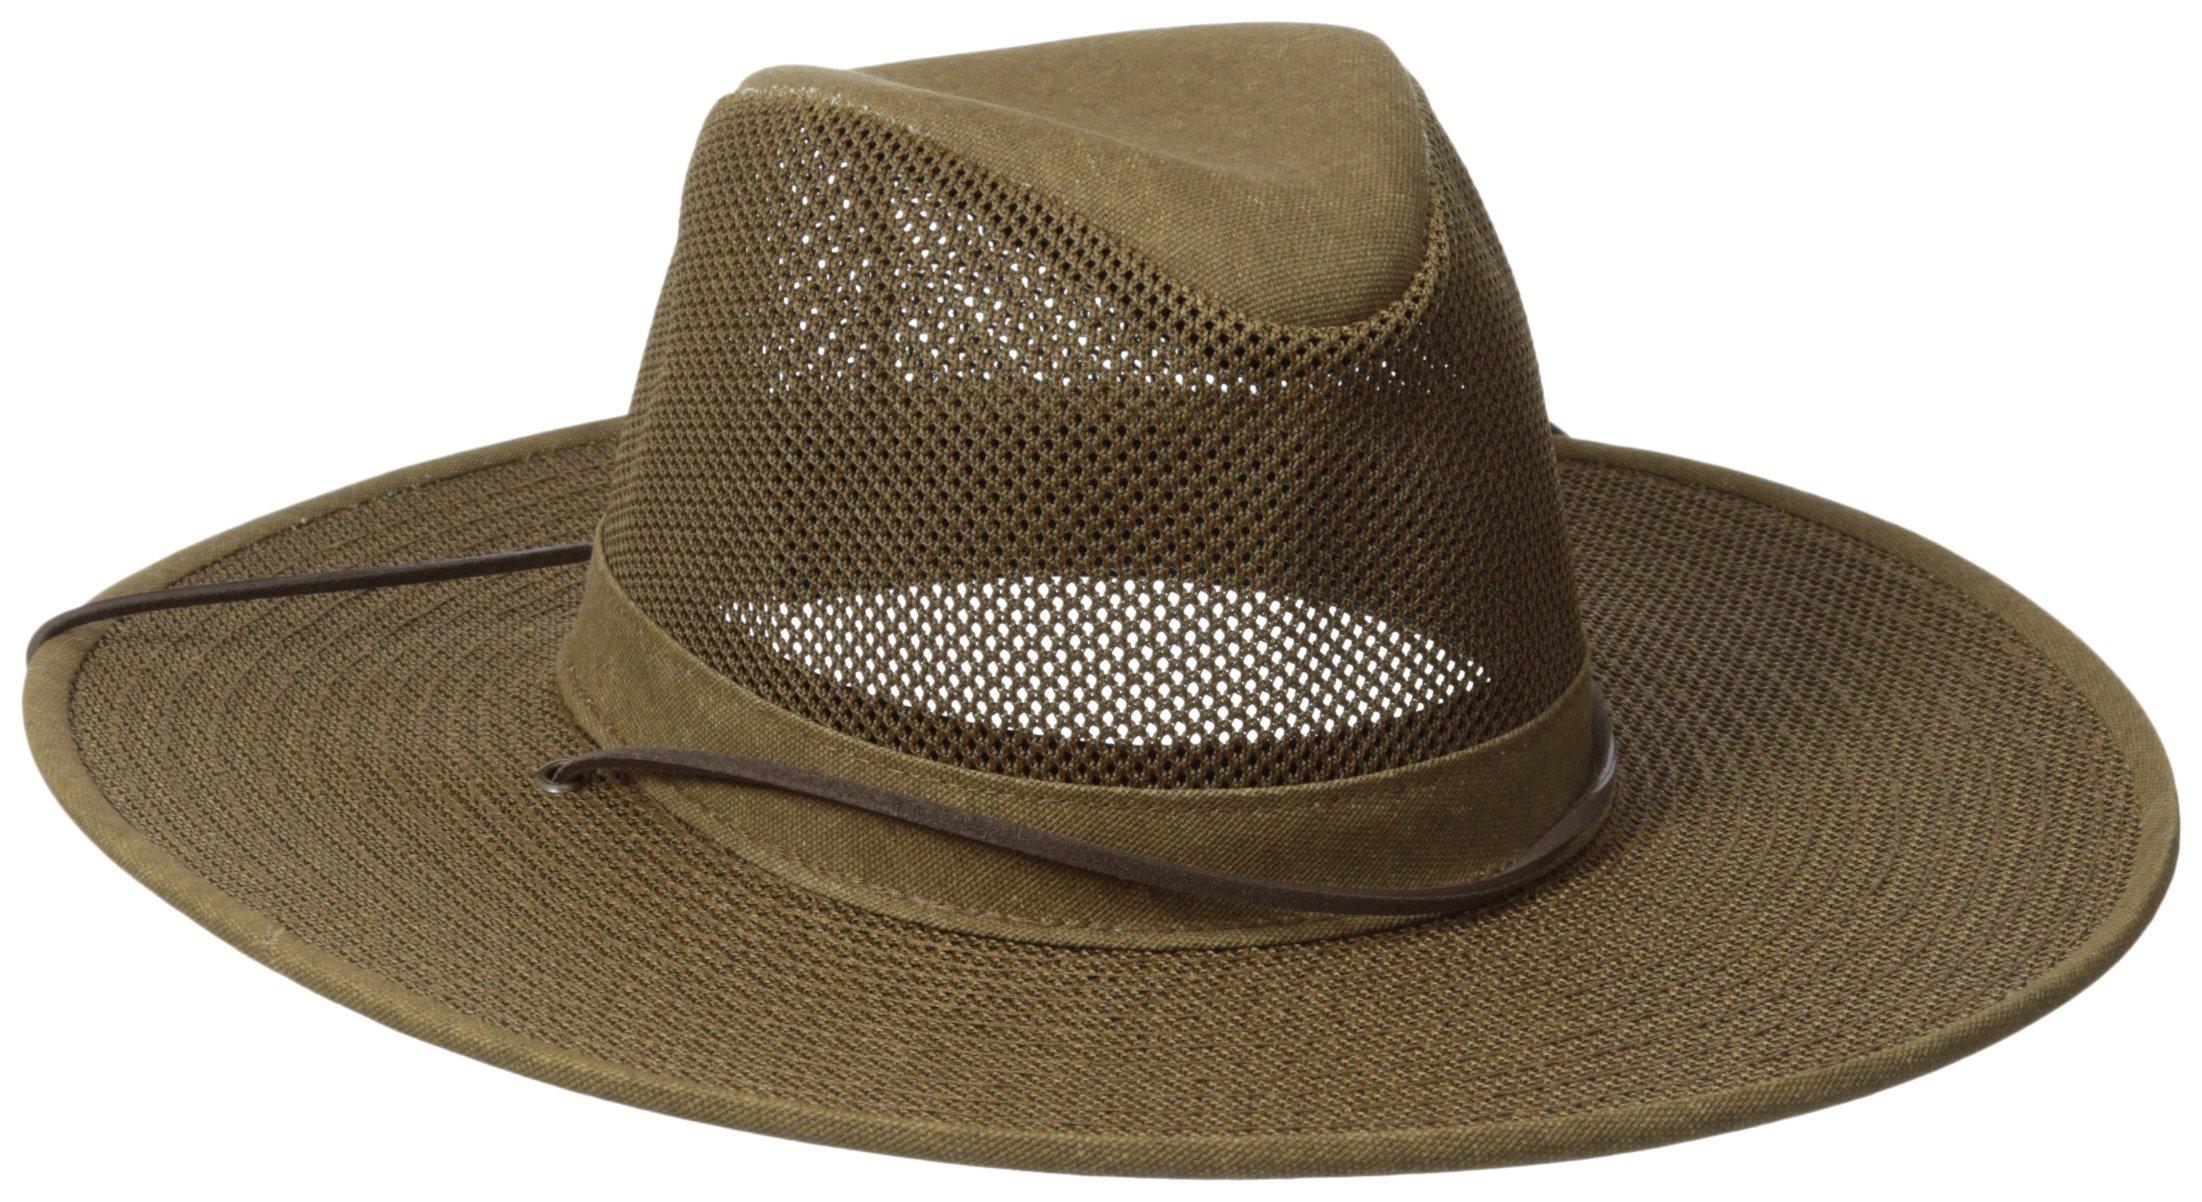 fdc66bc9 Best Rated in Men's Outdoor Recreation Hats & Caps & Helpful ...